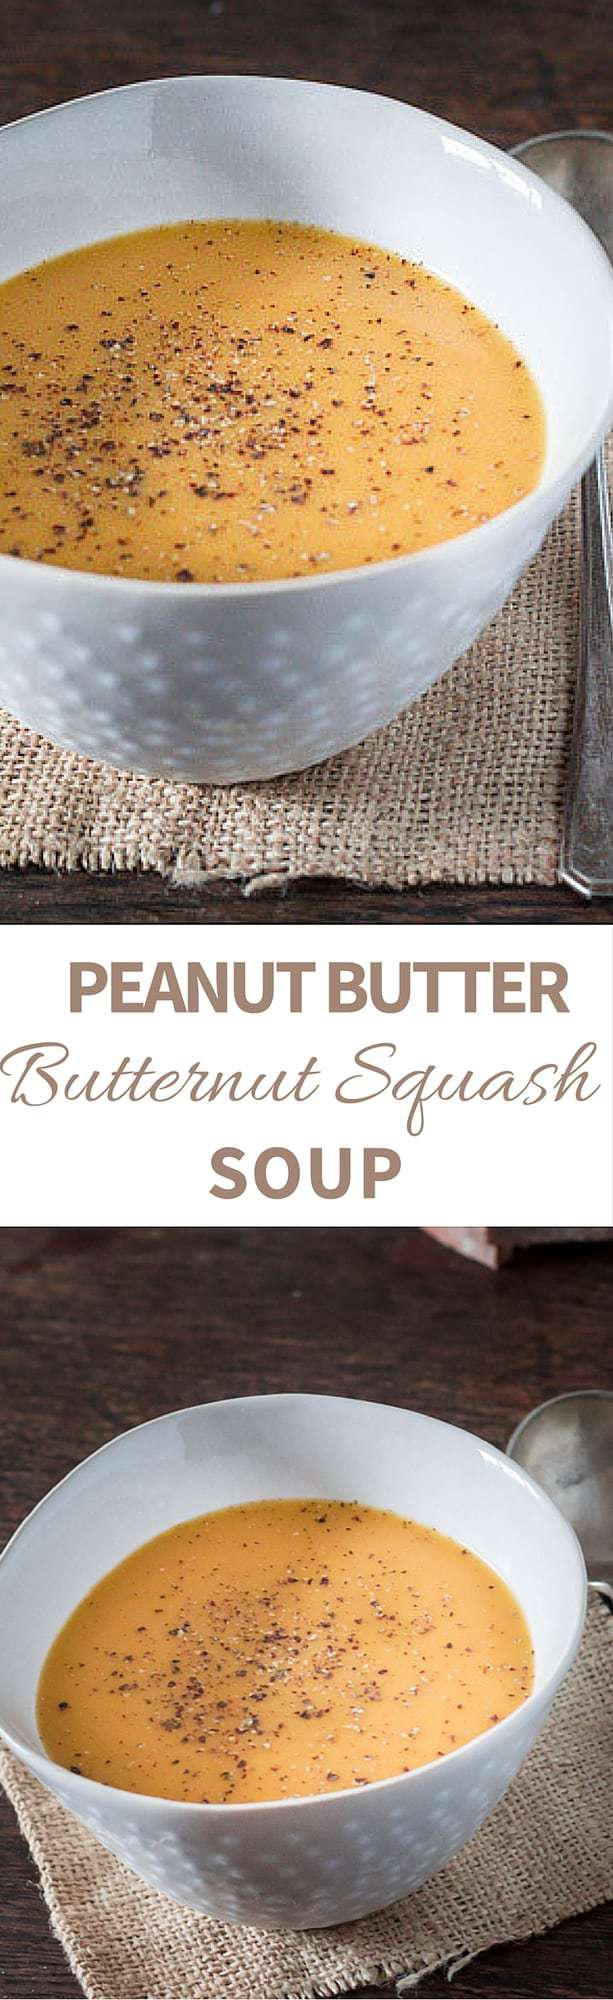 Velvety Peanut Buttery Butternut Squash Soup Recipe | Recipes From A Pantry